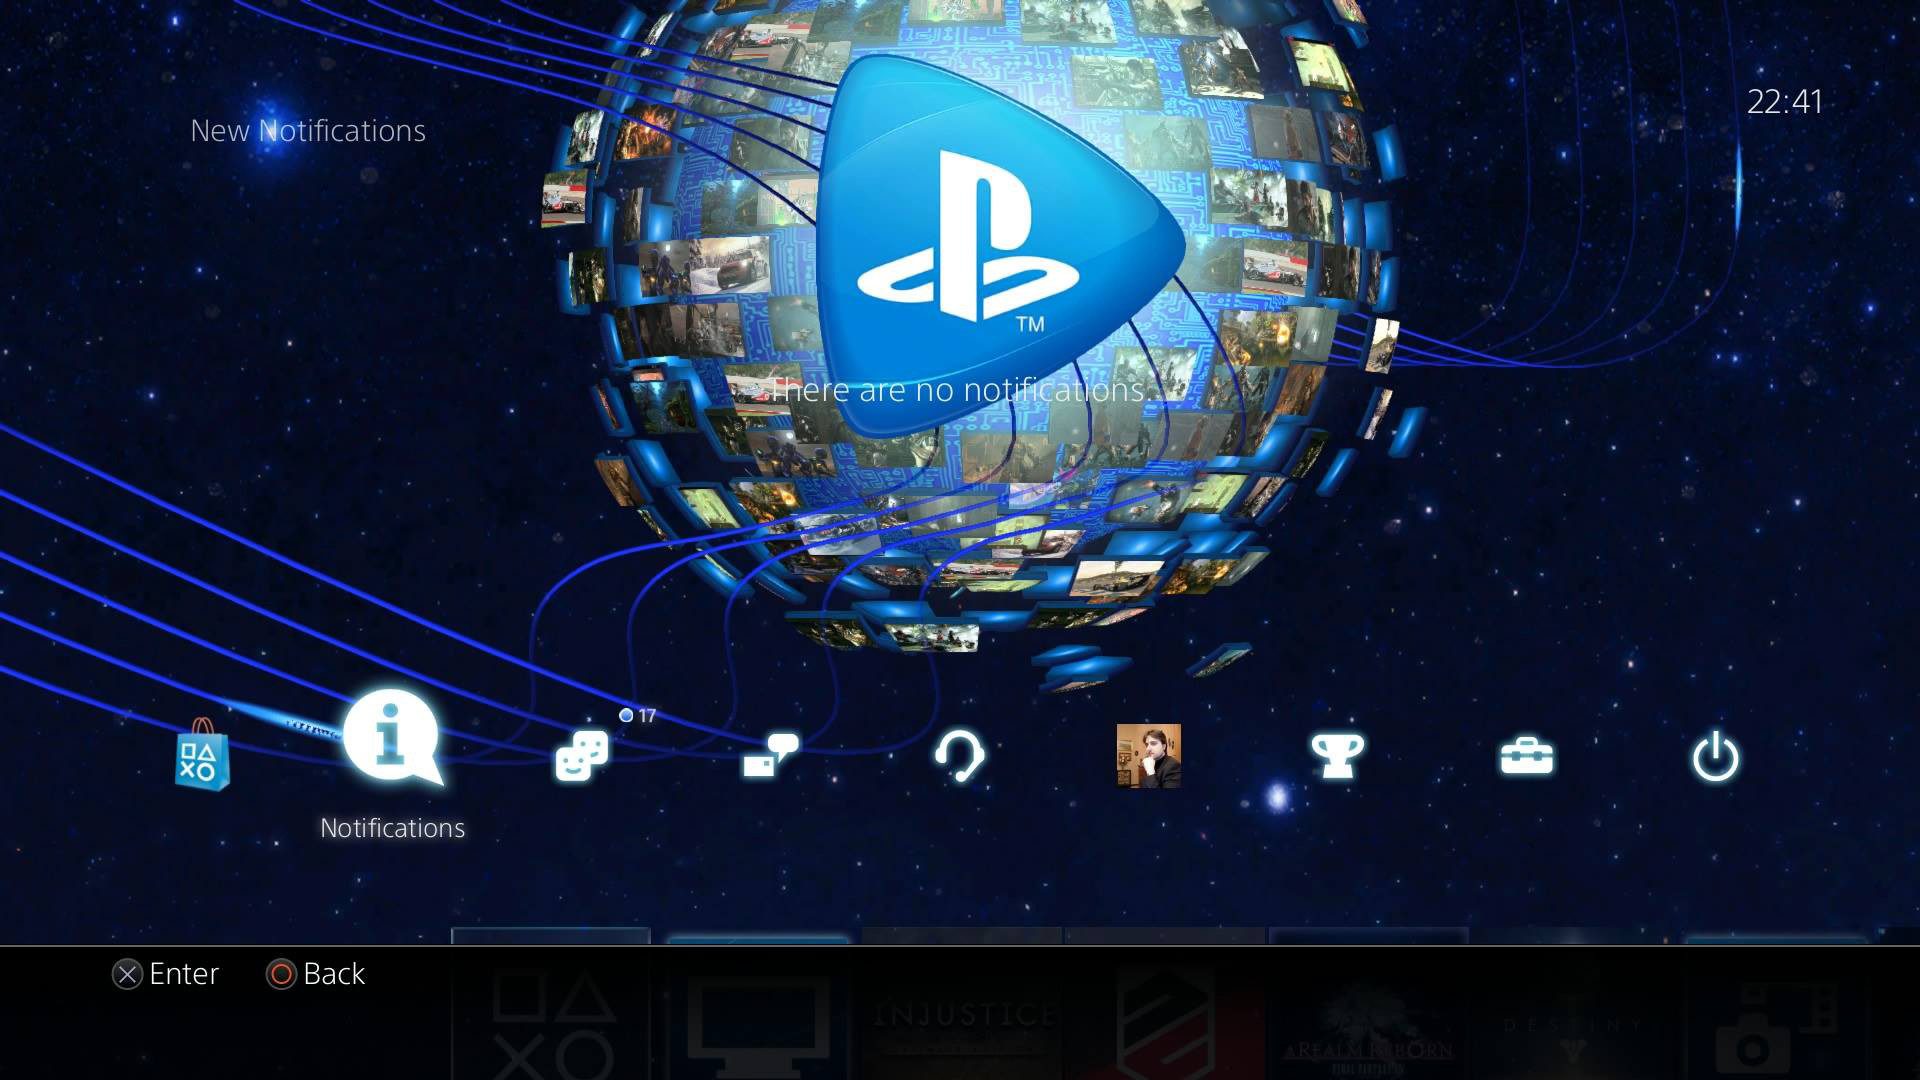 PS3 Wallpapers and Themes (78+ pictures)